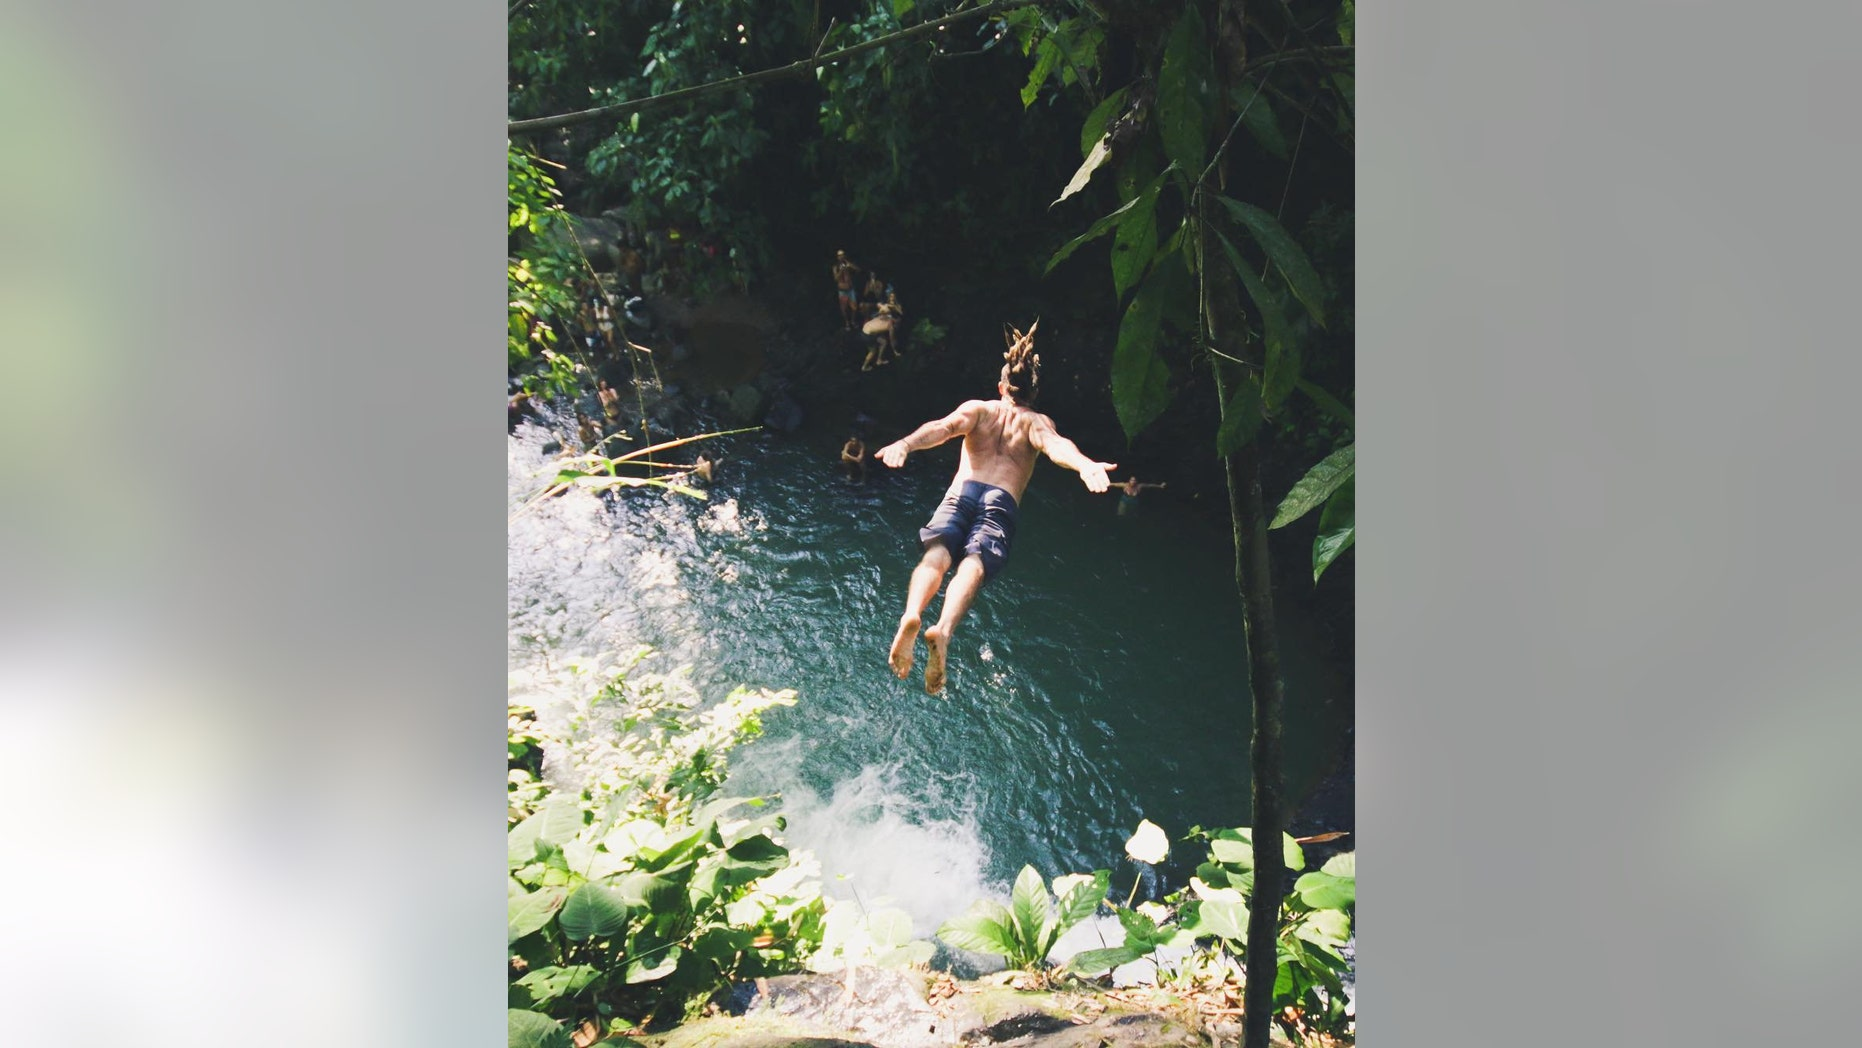 Wanna jump from waterfalls in Costa Rica? This group takes tourists